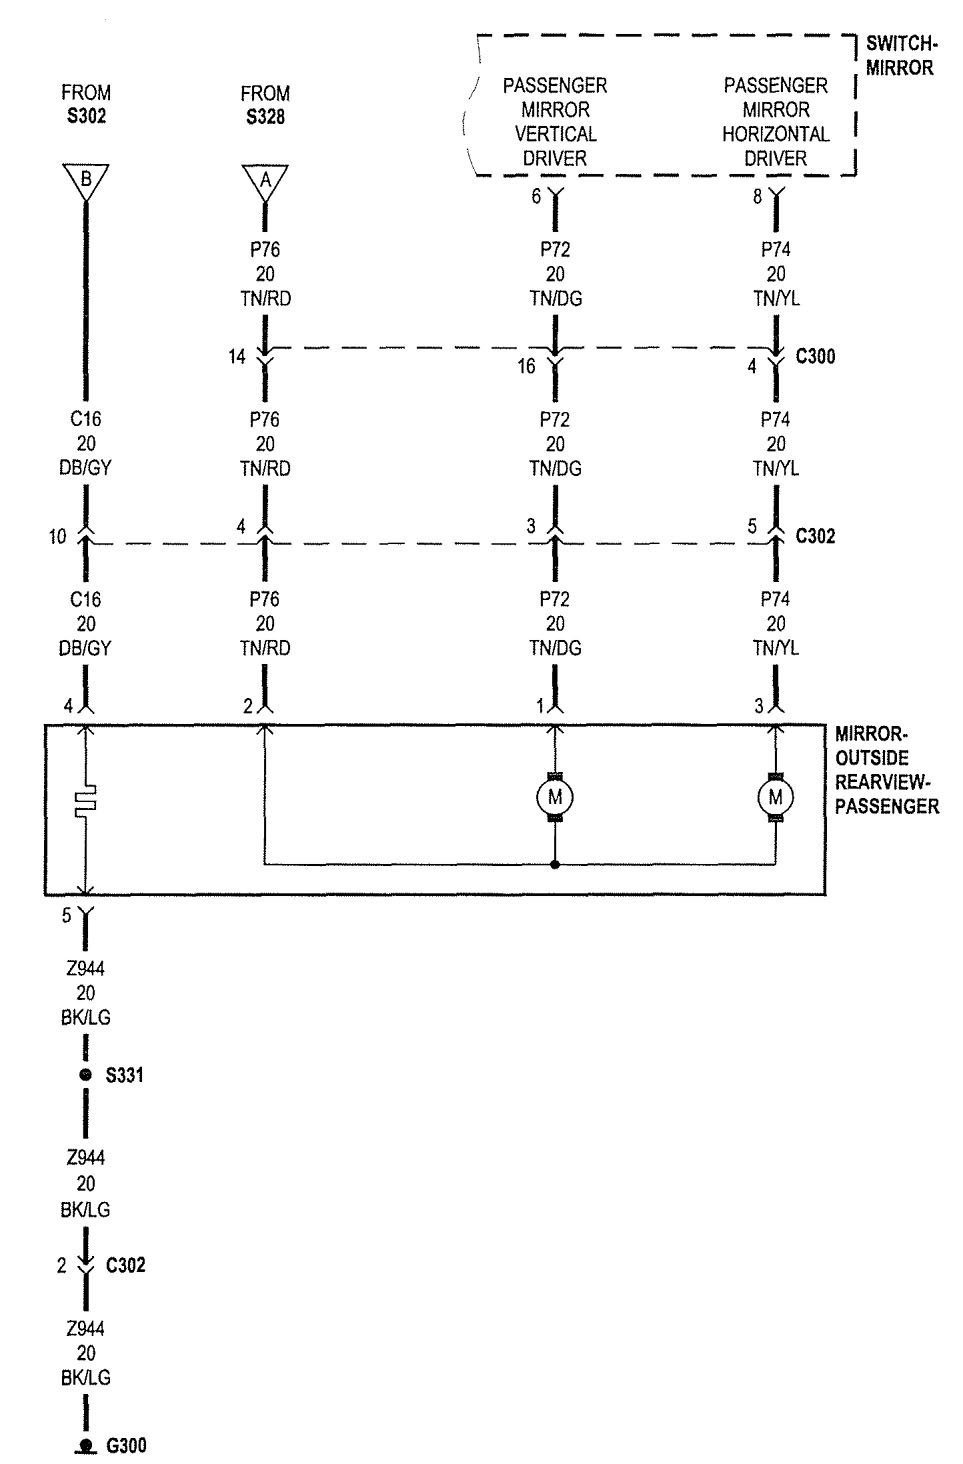 2008 dakota laramie wiring diagrams w/ heated mirrors (diagram 2) found  access to some online wiring diagrams for the 2010 and 2011 dakotas